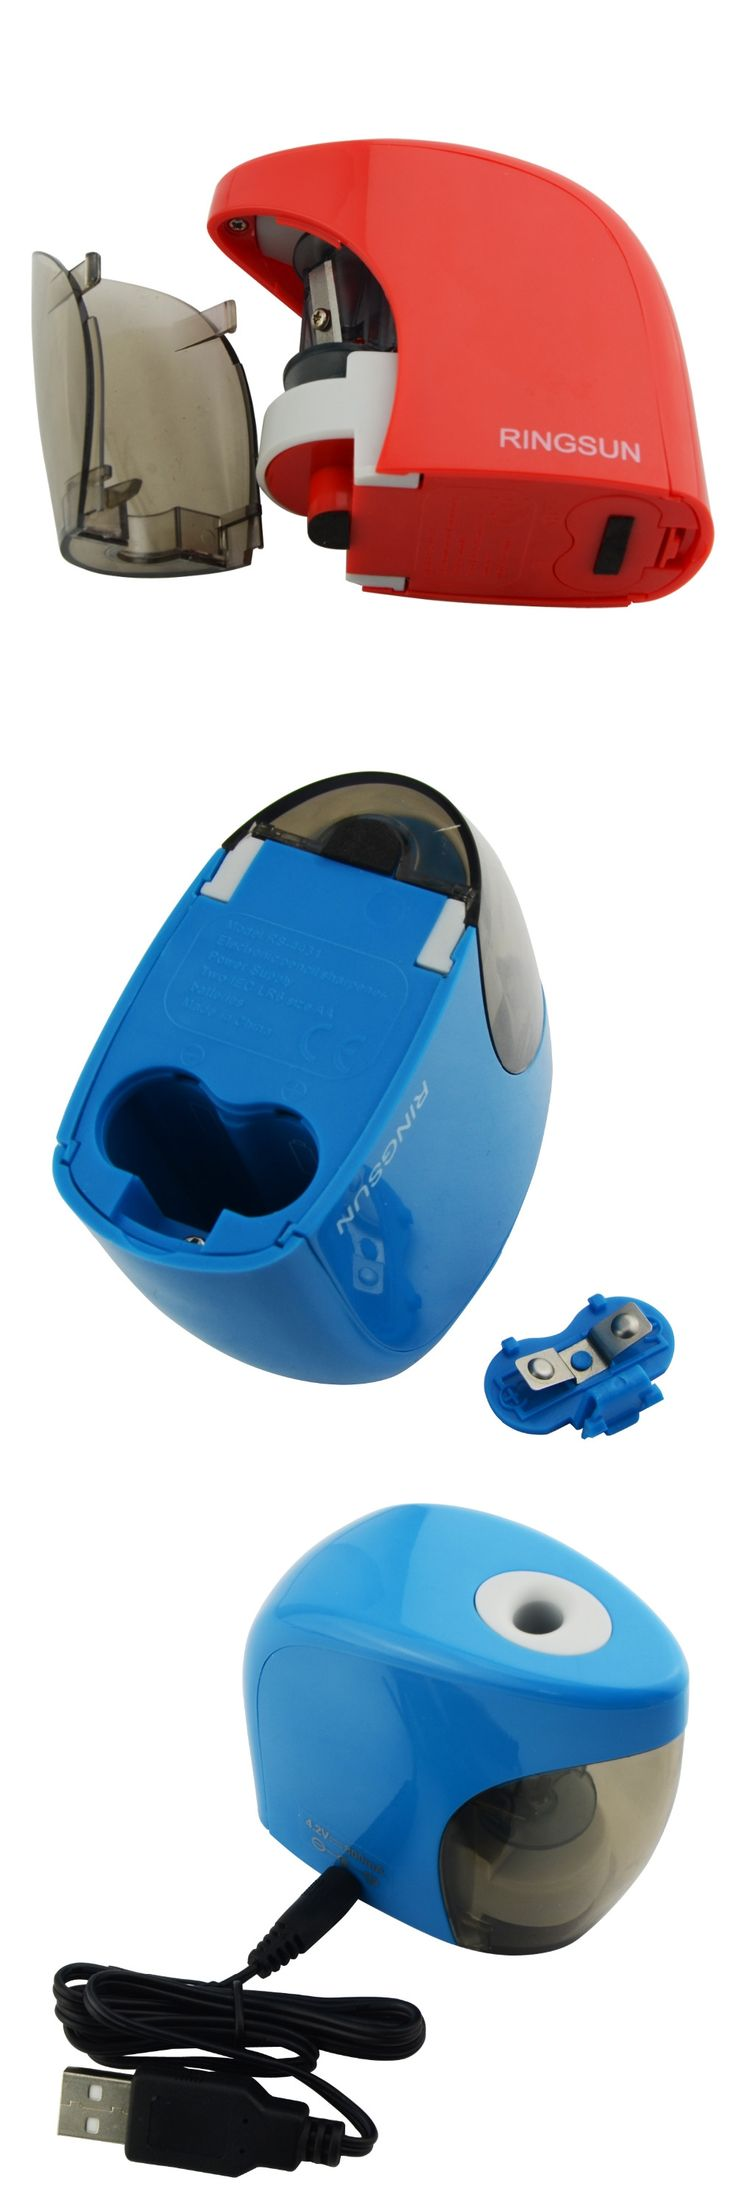 Sharpener Electric Pencil Sharpener USB & Batteries Auto Pencil Sharpener Sacapuntas Material Escolar Aiguisoir Puntenslijper